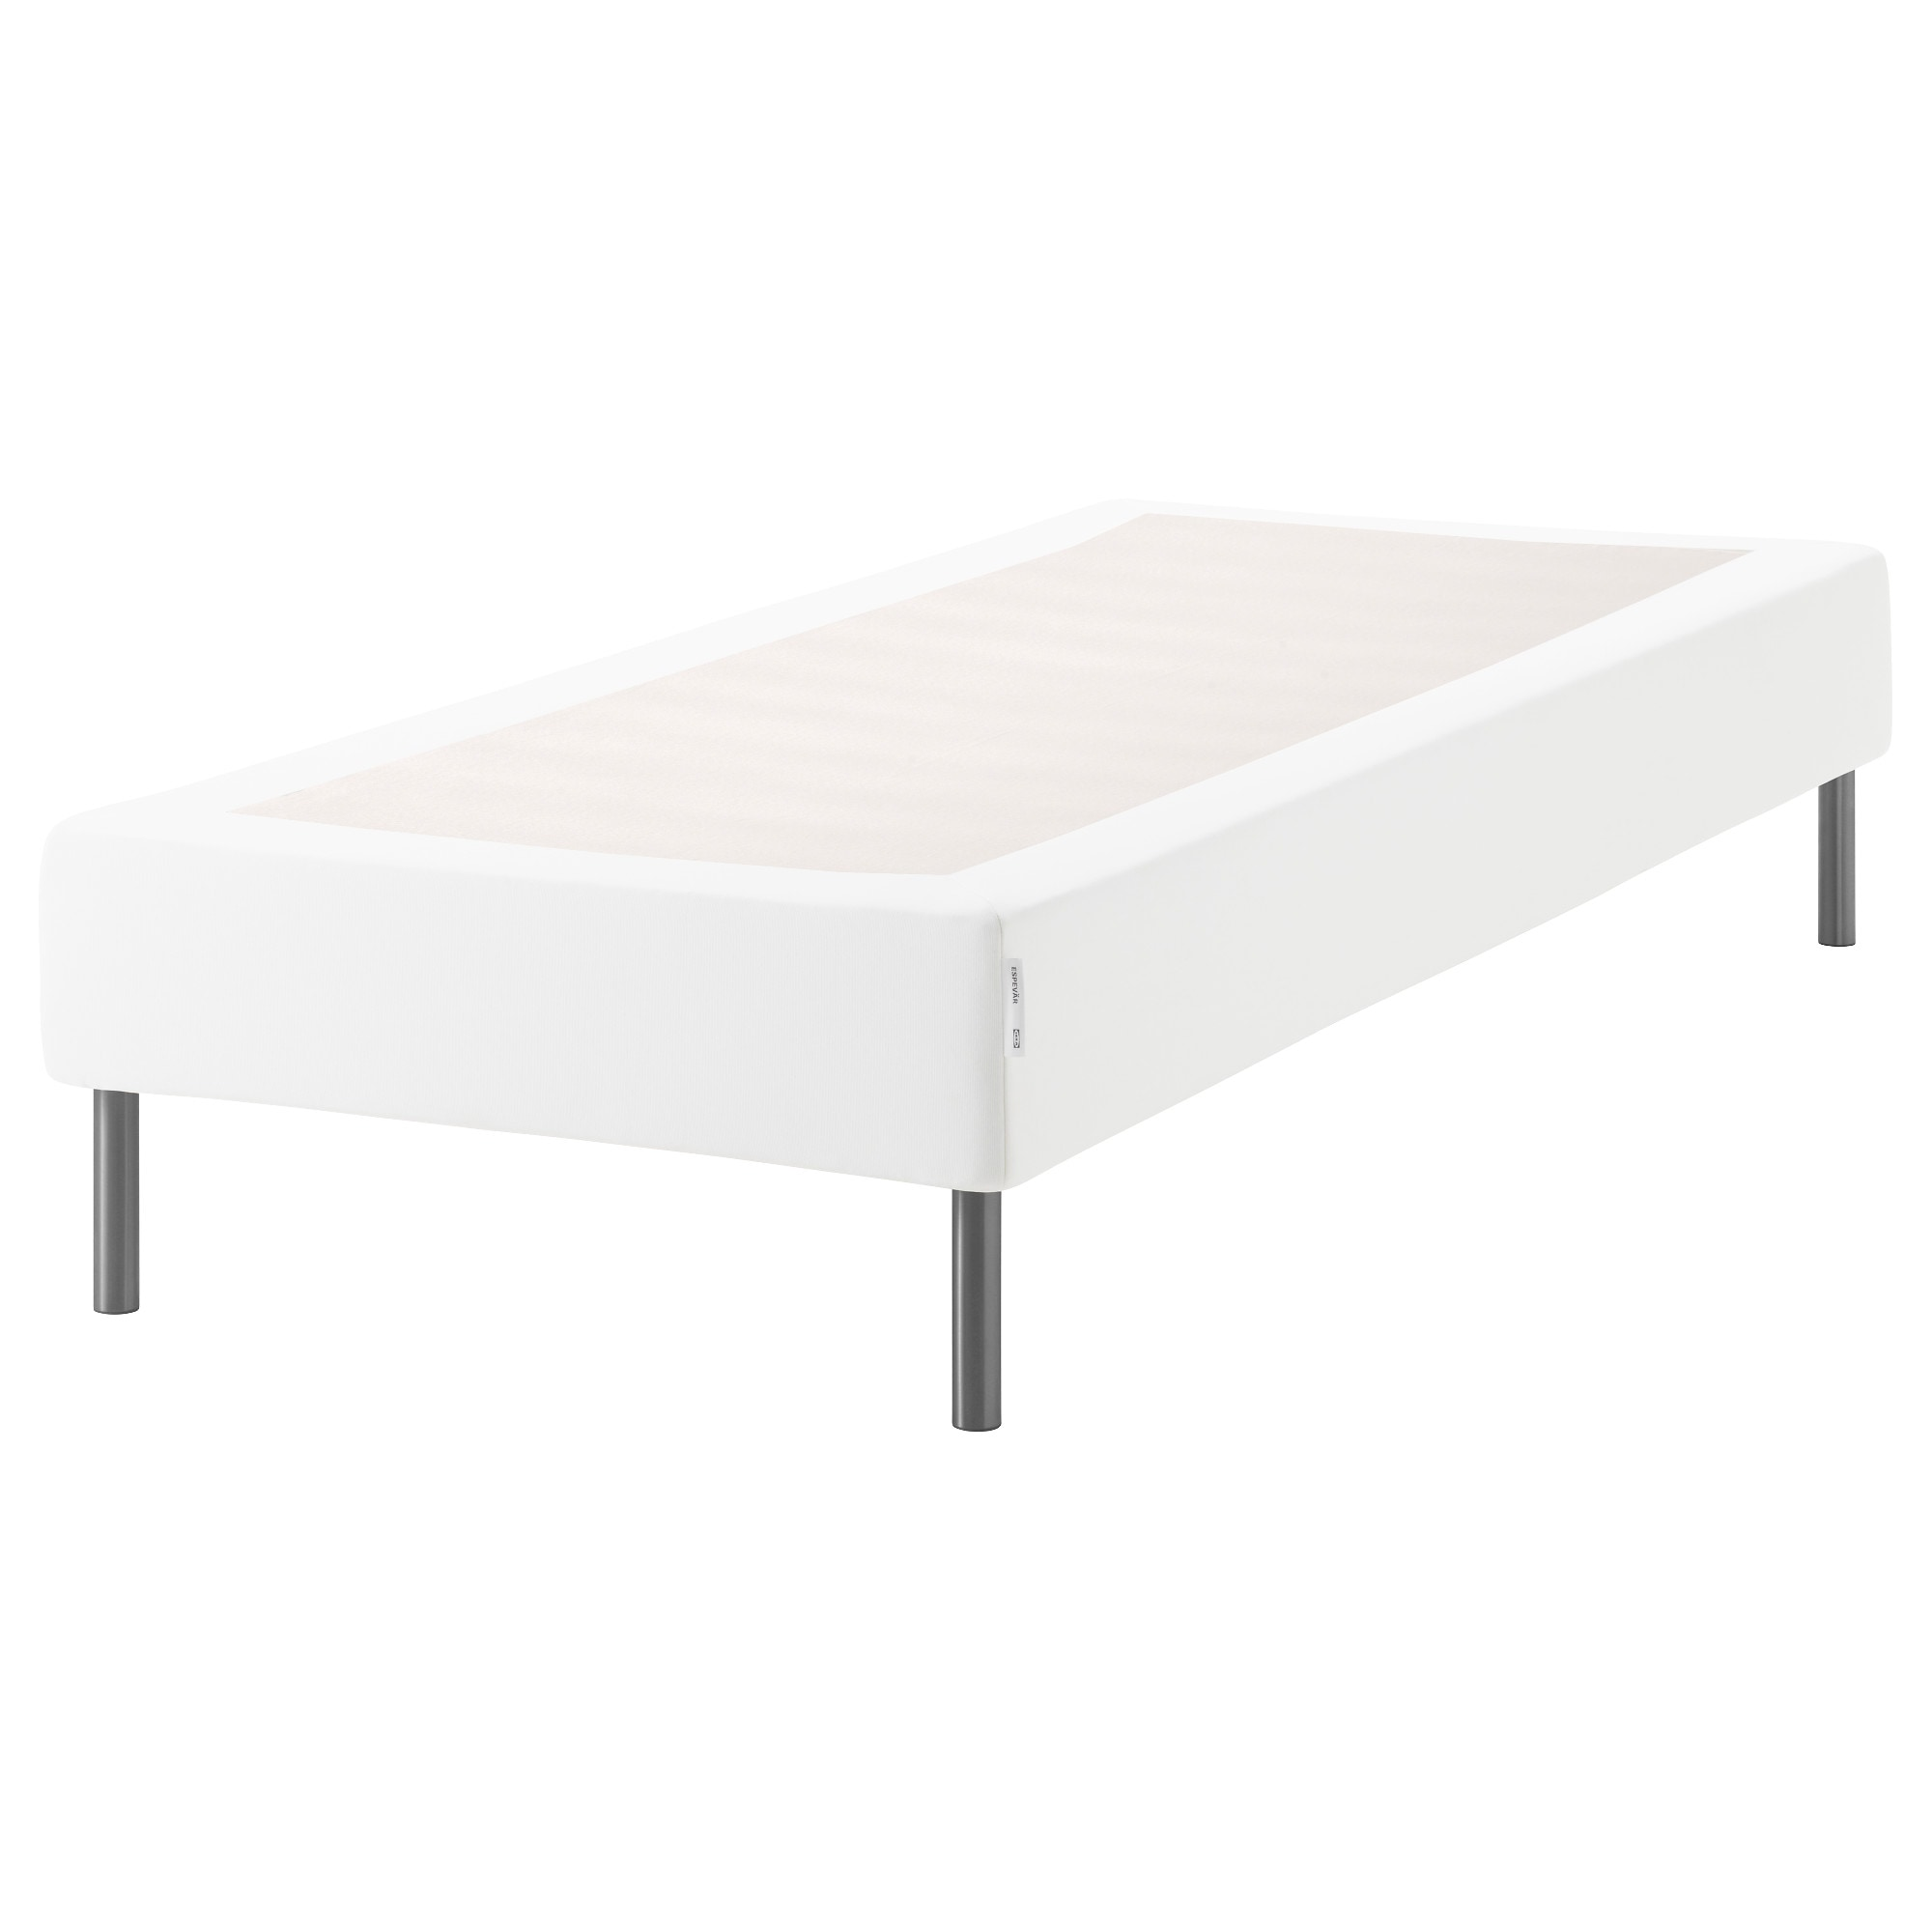 ESPEVÄR Slatted mattress base with legs   Twin, Bjorli   IKEA